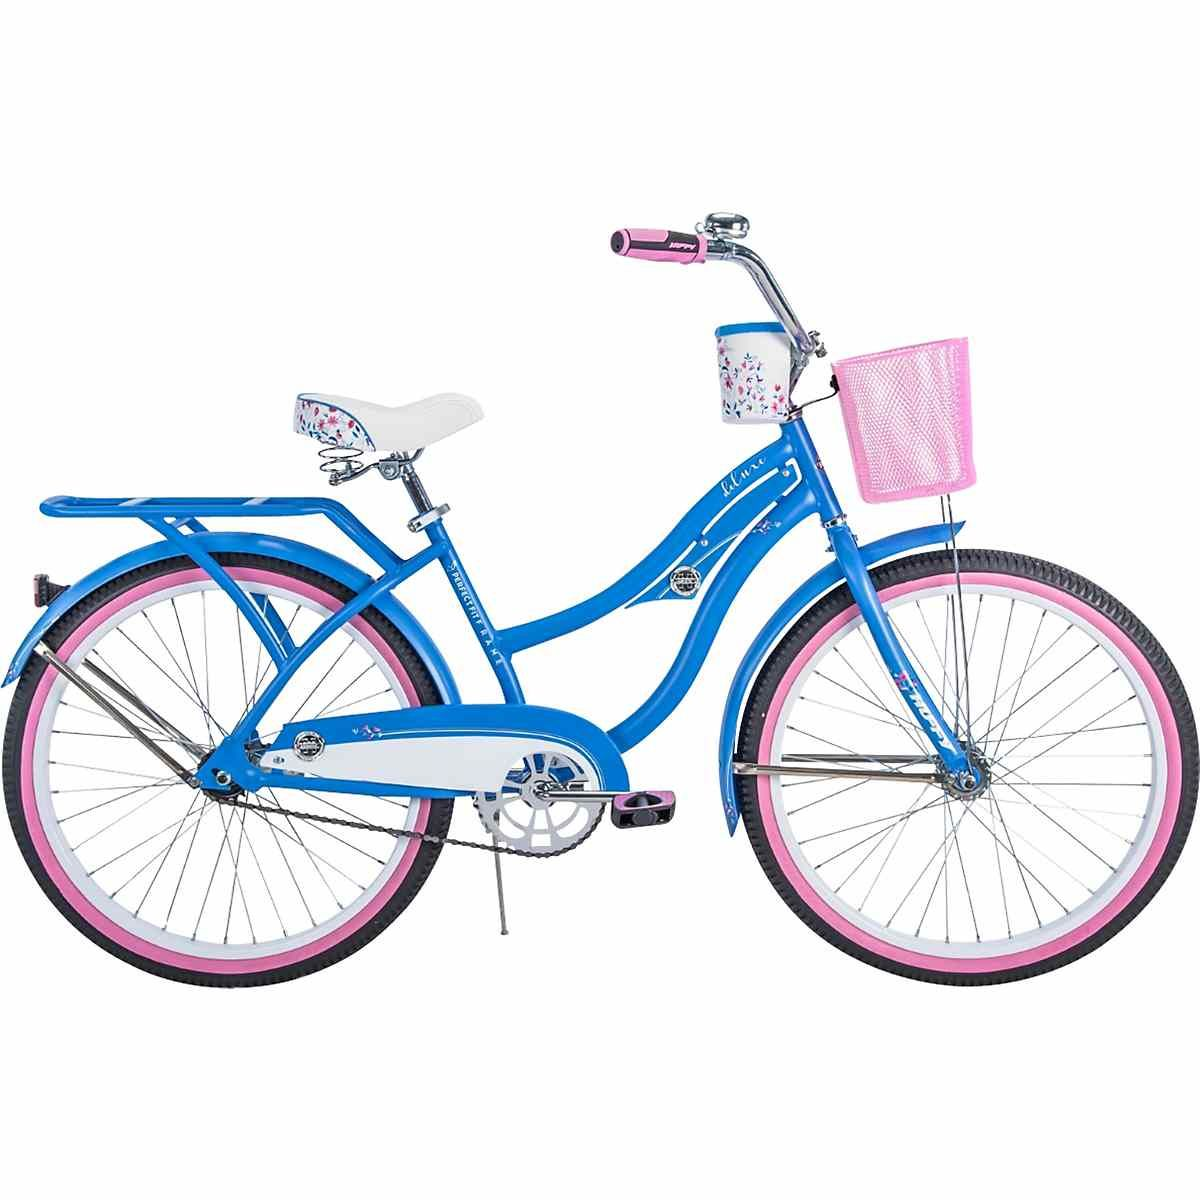 Huffy Girls Deluxe 24 In Cruiser Bicycle Academy Cruiser Bicycle Kids Bicycle Bicycle